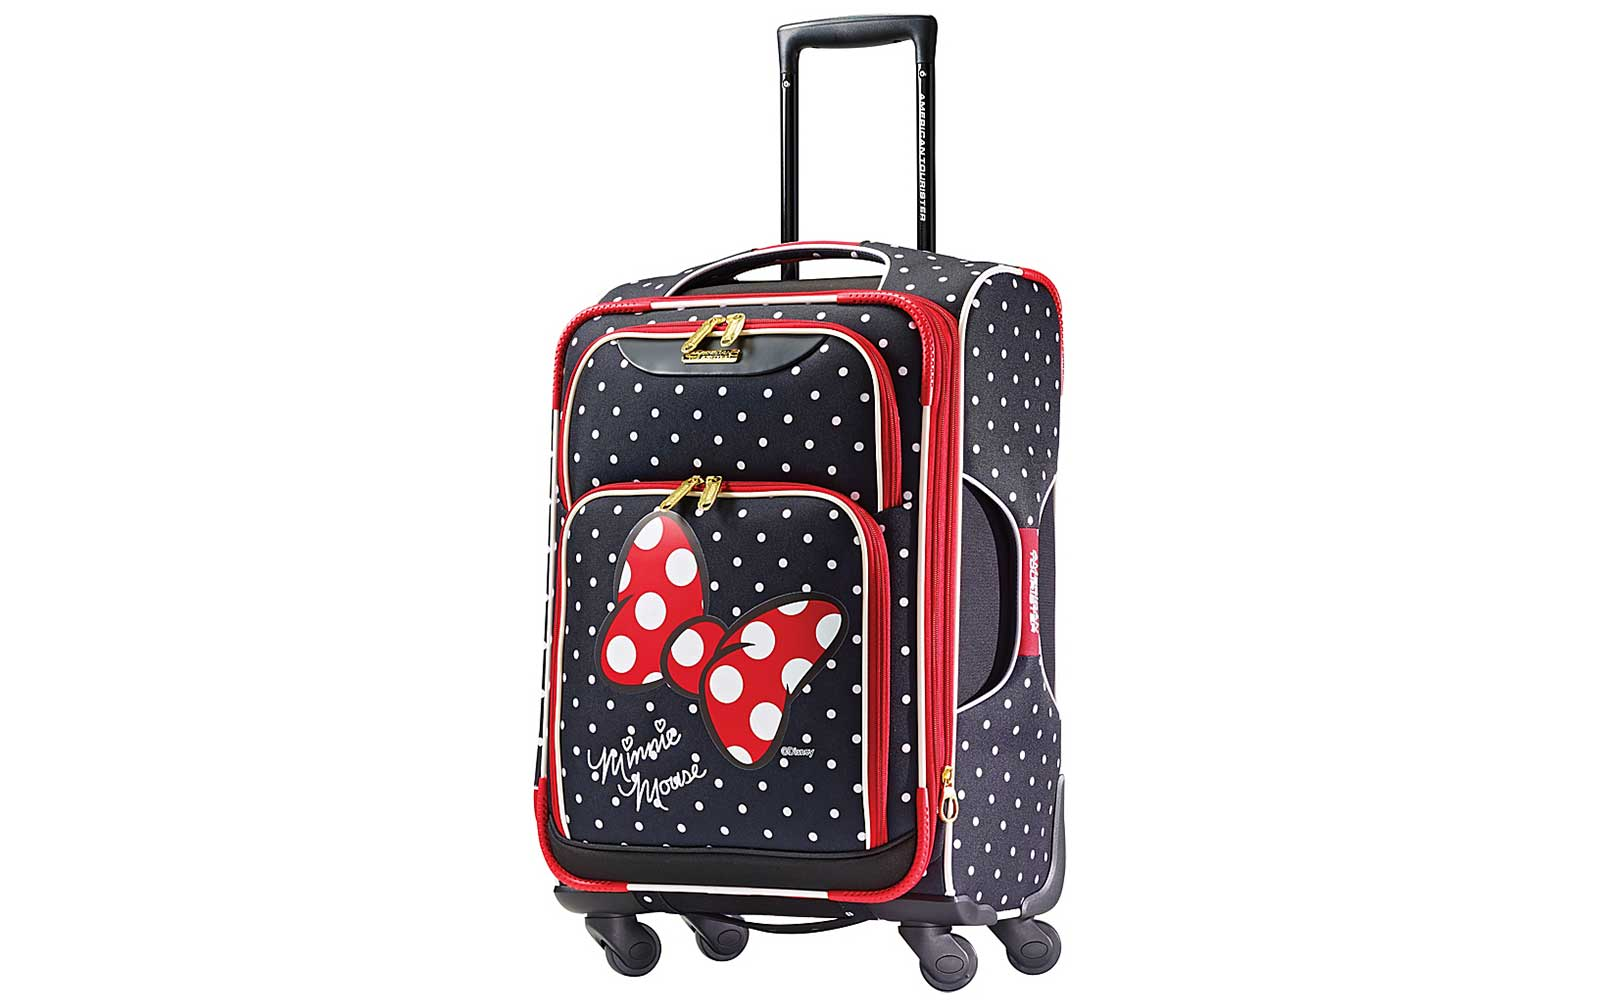 Disney Themed Luggage